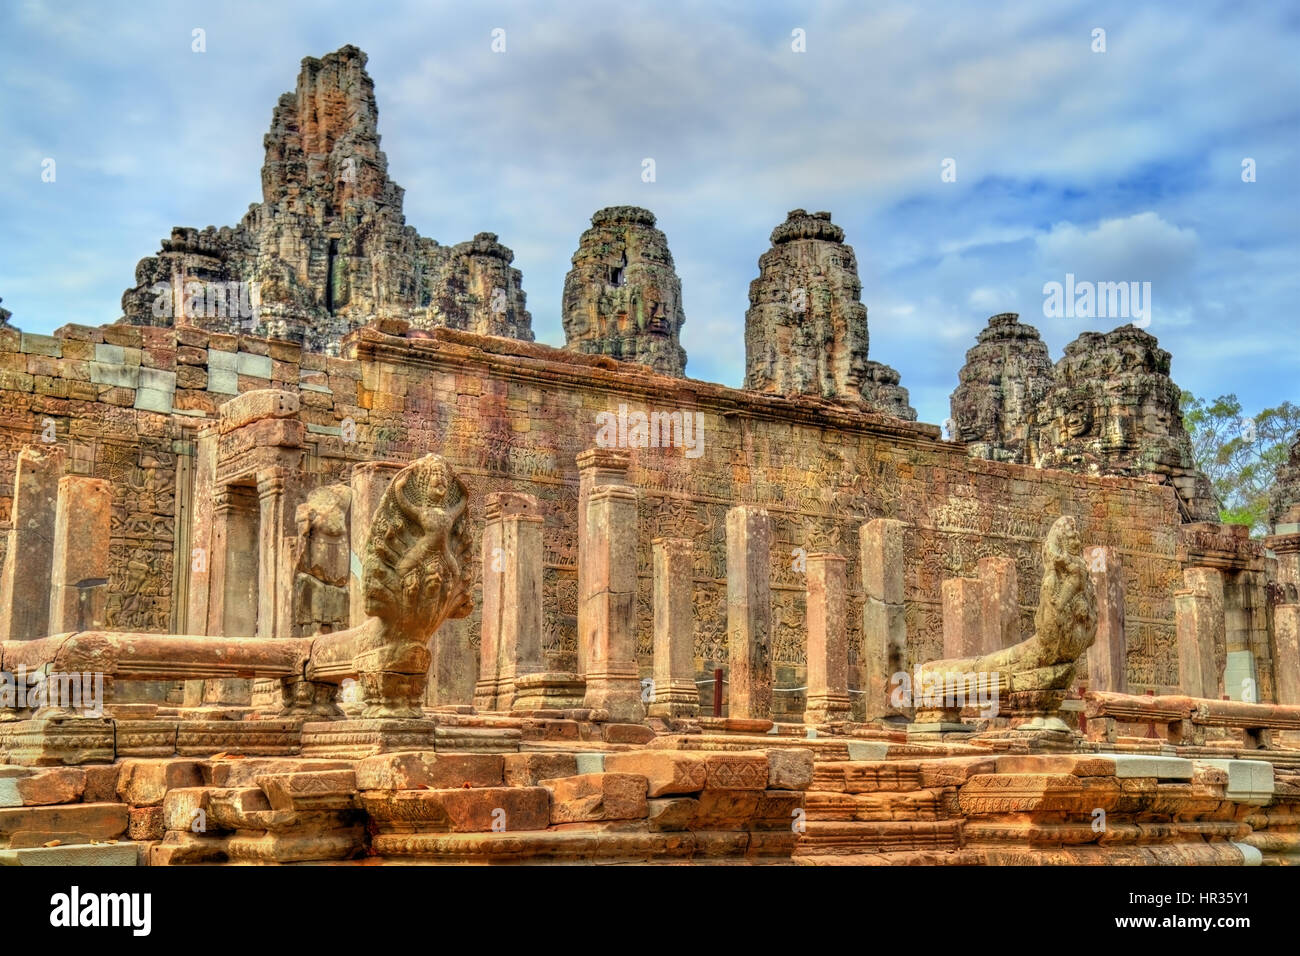 The Bayon, a Khmer temple at Angkor in Cambodia, Southeast Asia - Stock Image